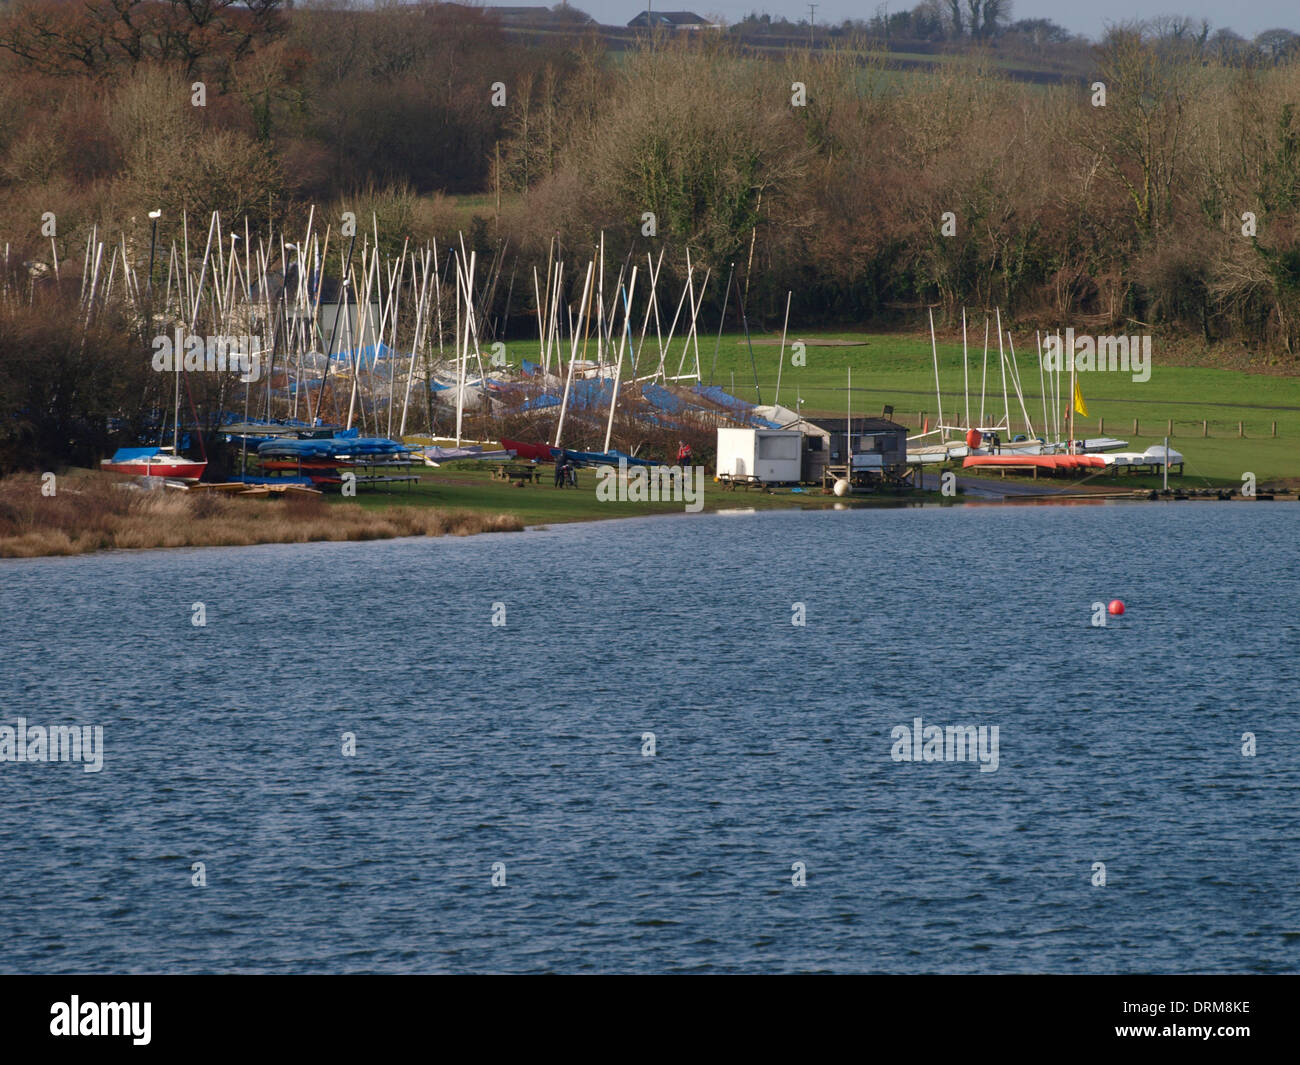 Watersport Centre, Roadford Reservoir, Devon, UK - Stock Image